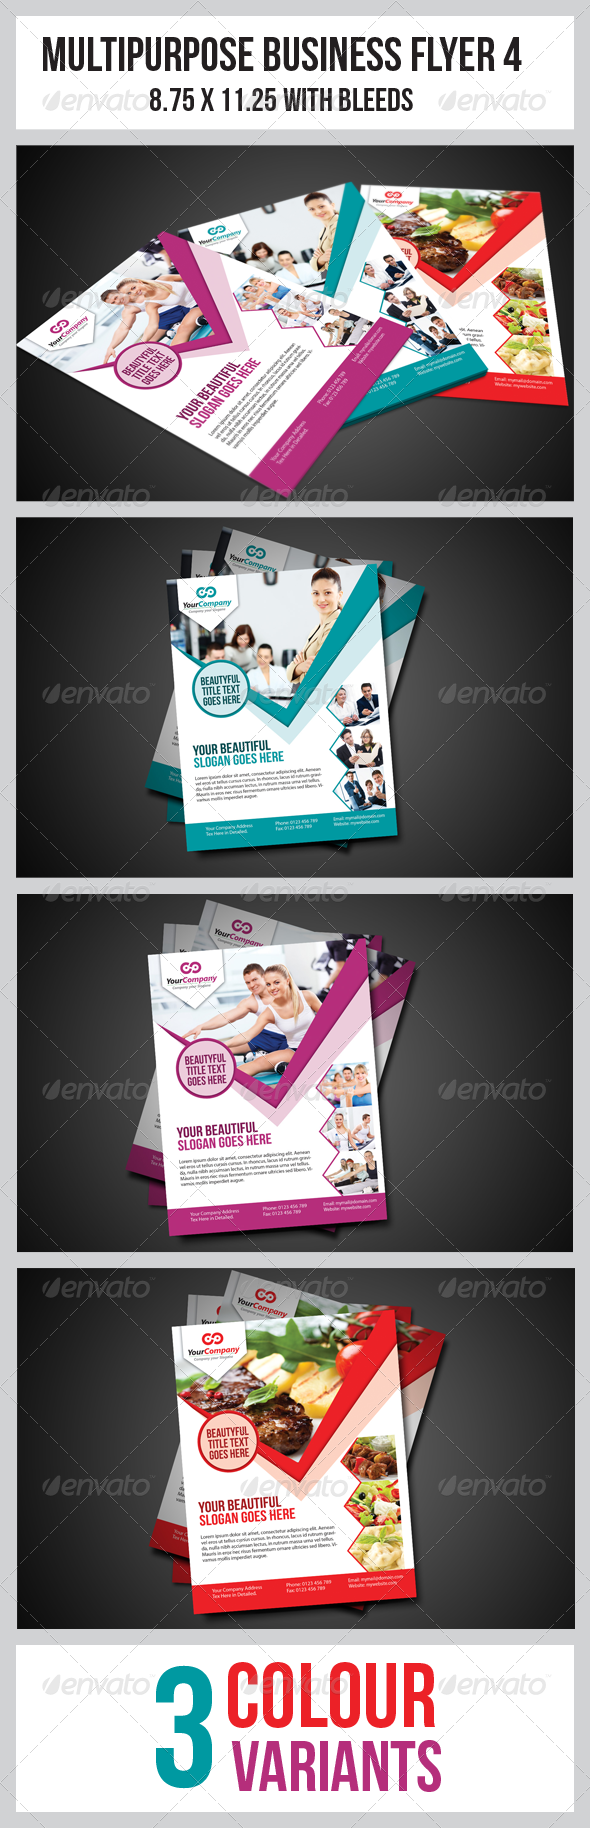 GraphicRiver Multipurpose Business Flyer 4 3406799